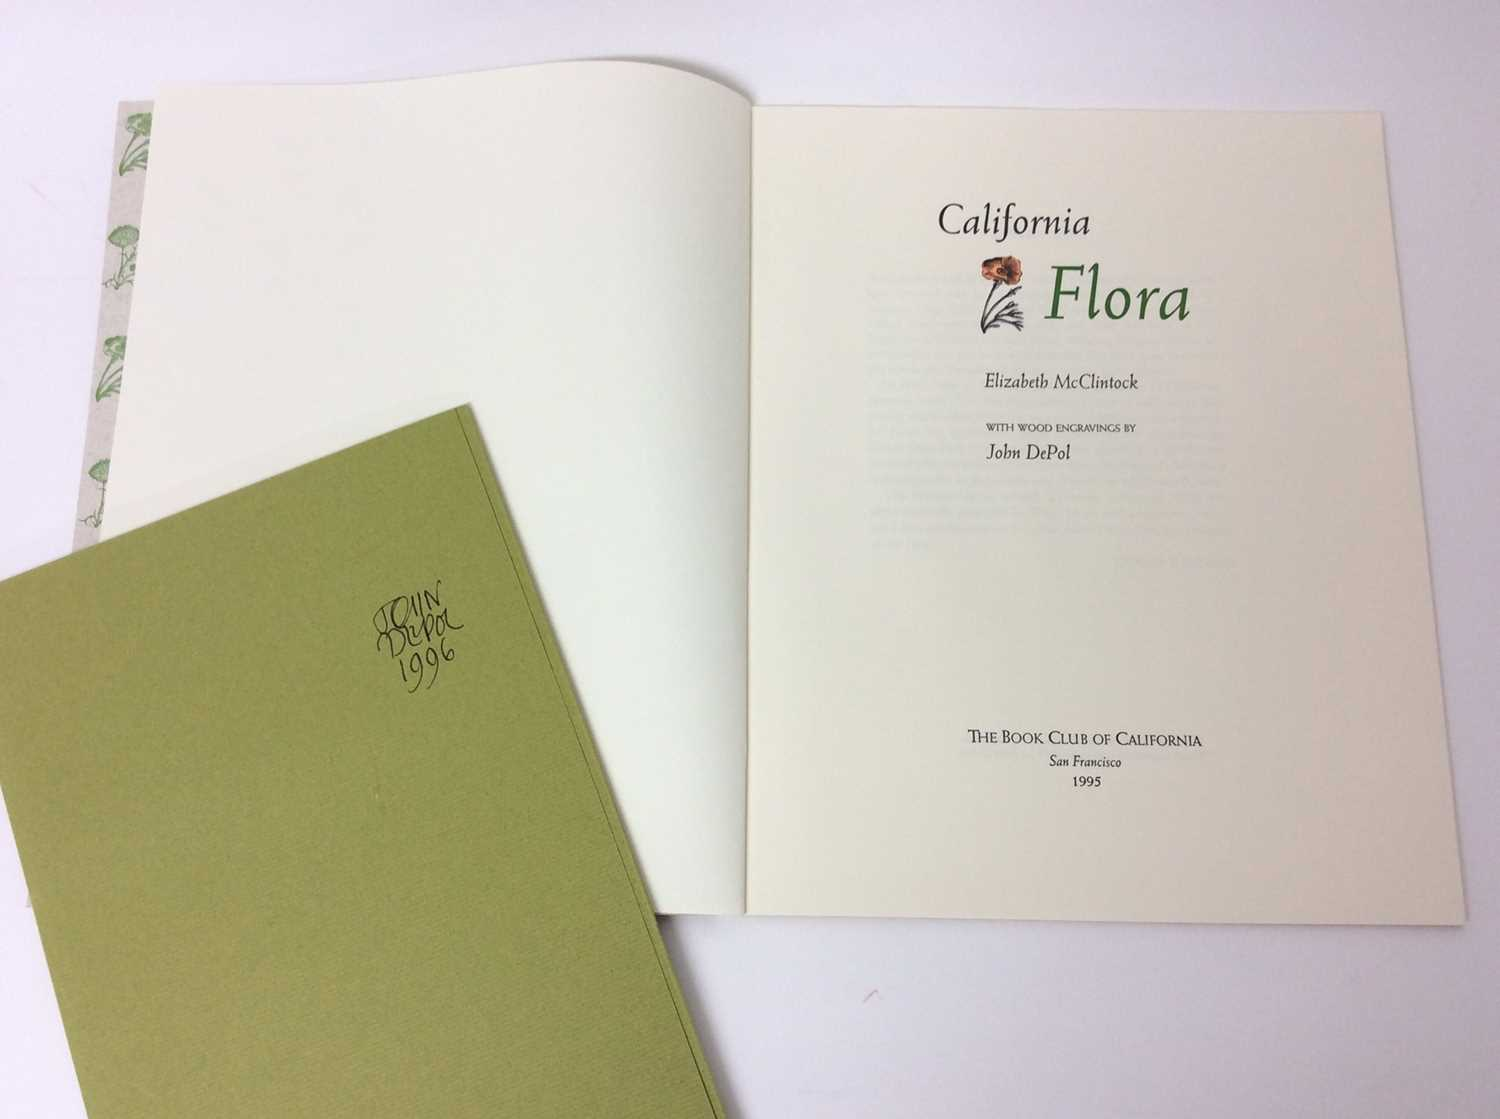 Elizabeth McClintoch - California Flora, The Book Vlub of California, 1995, two others - Image 3 of 16